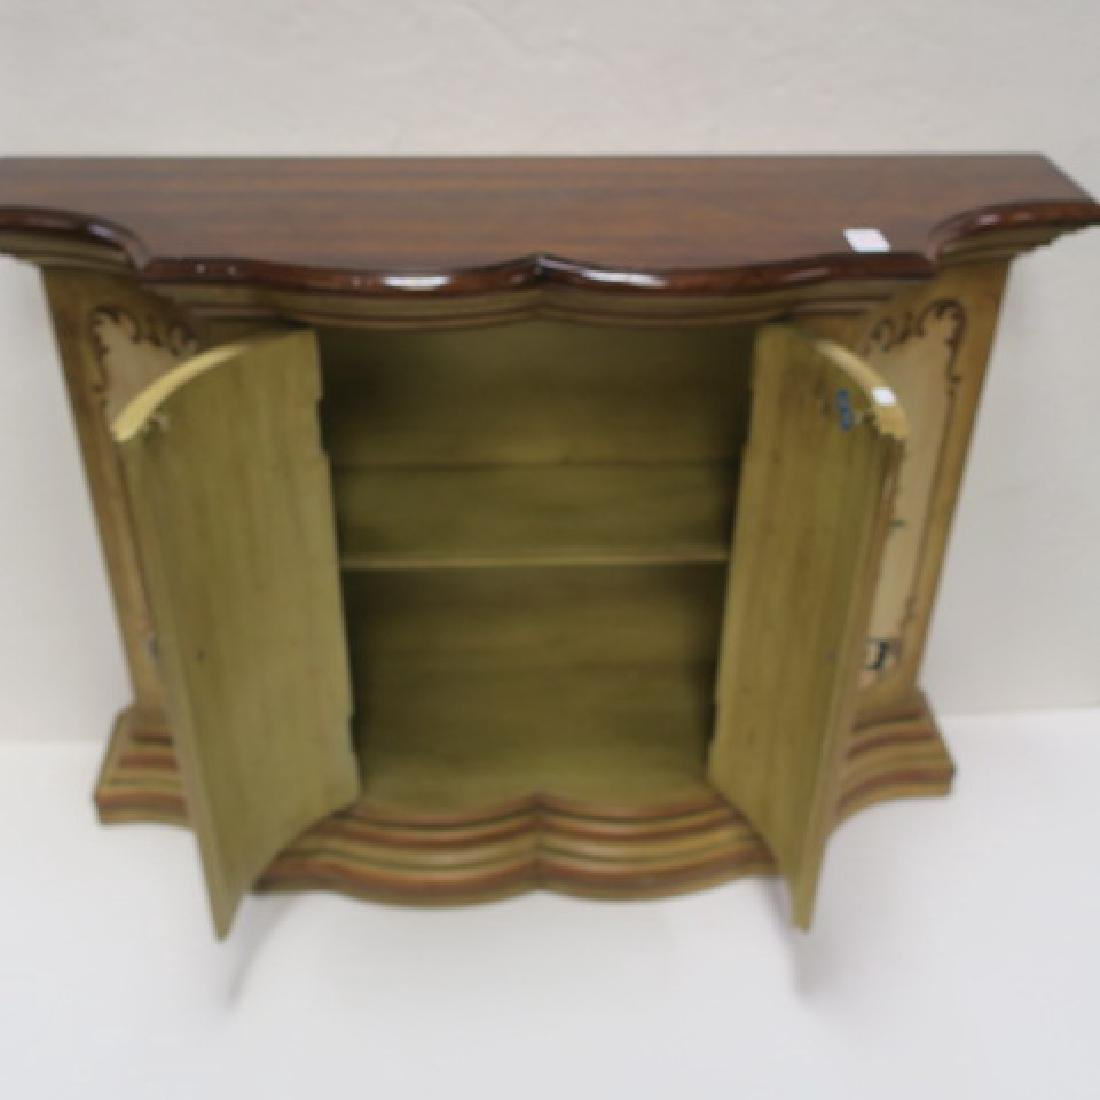 Floral Painted Shaped Edge Entry Hall Cabinet: - 2